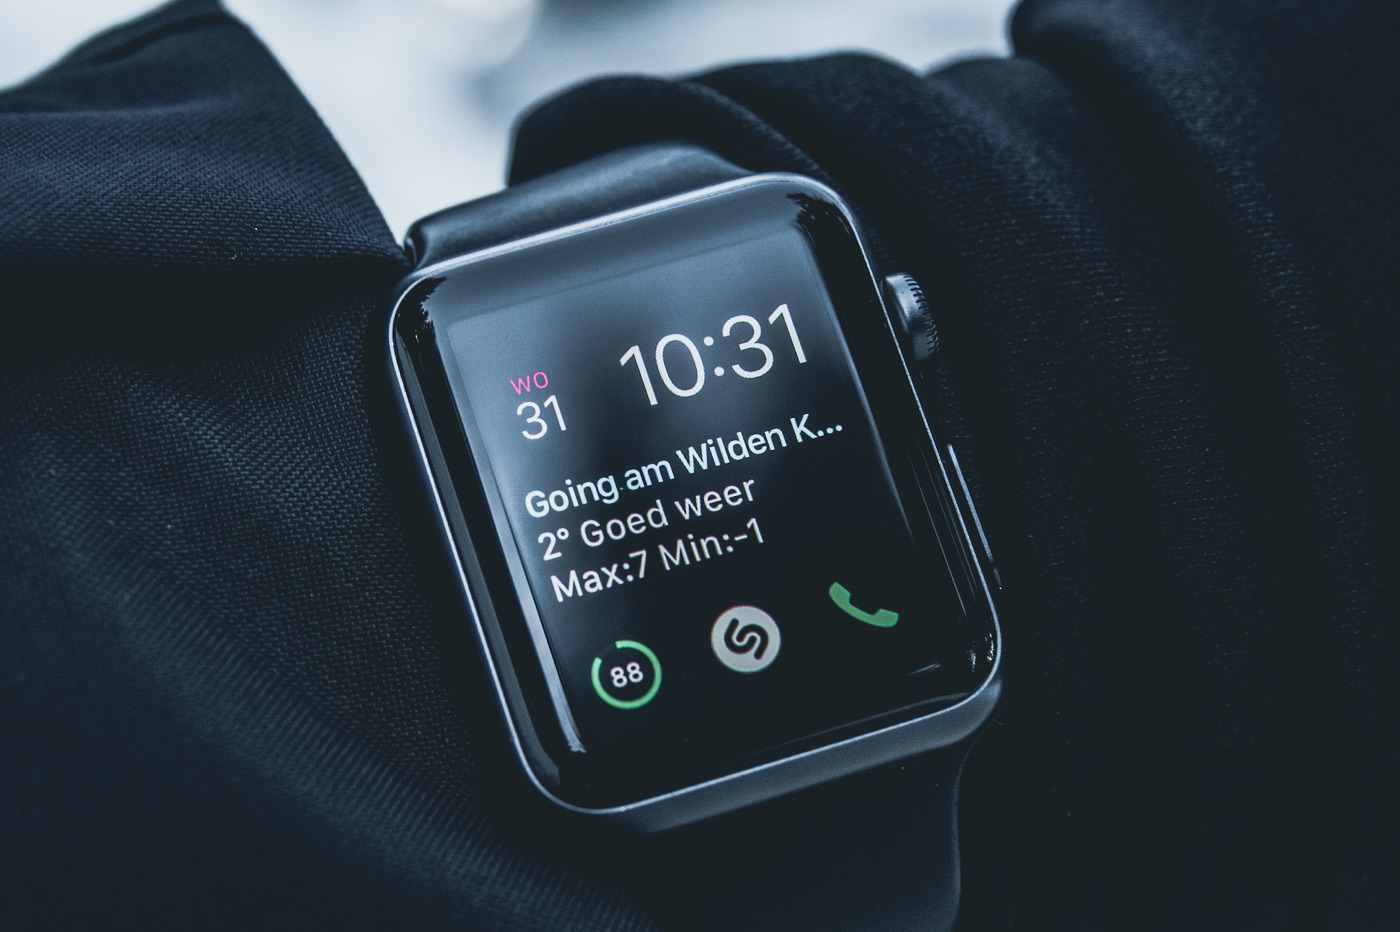 Apple Watch manteau noir